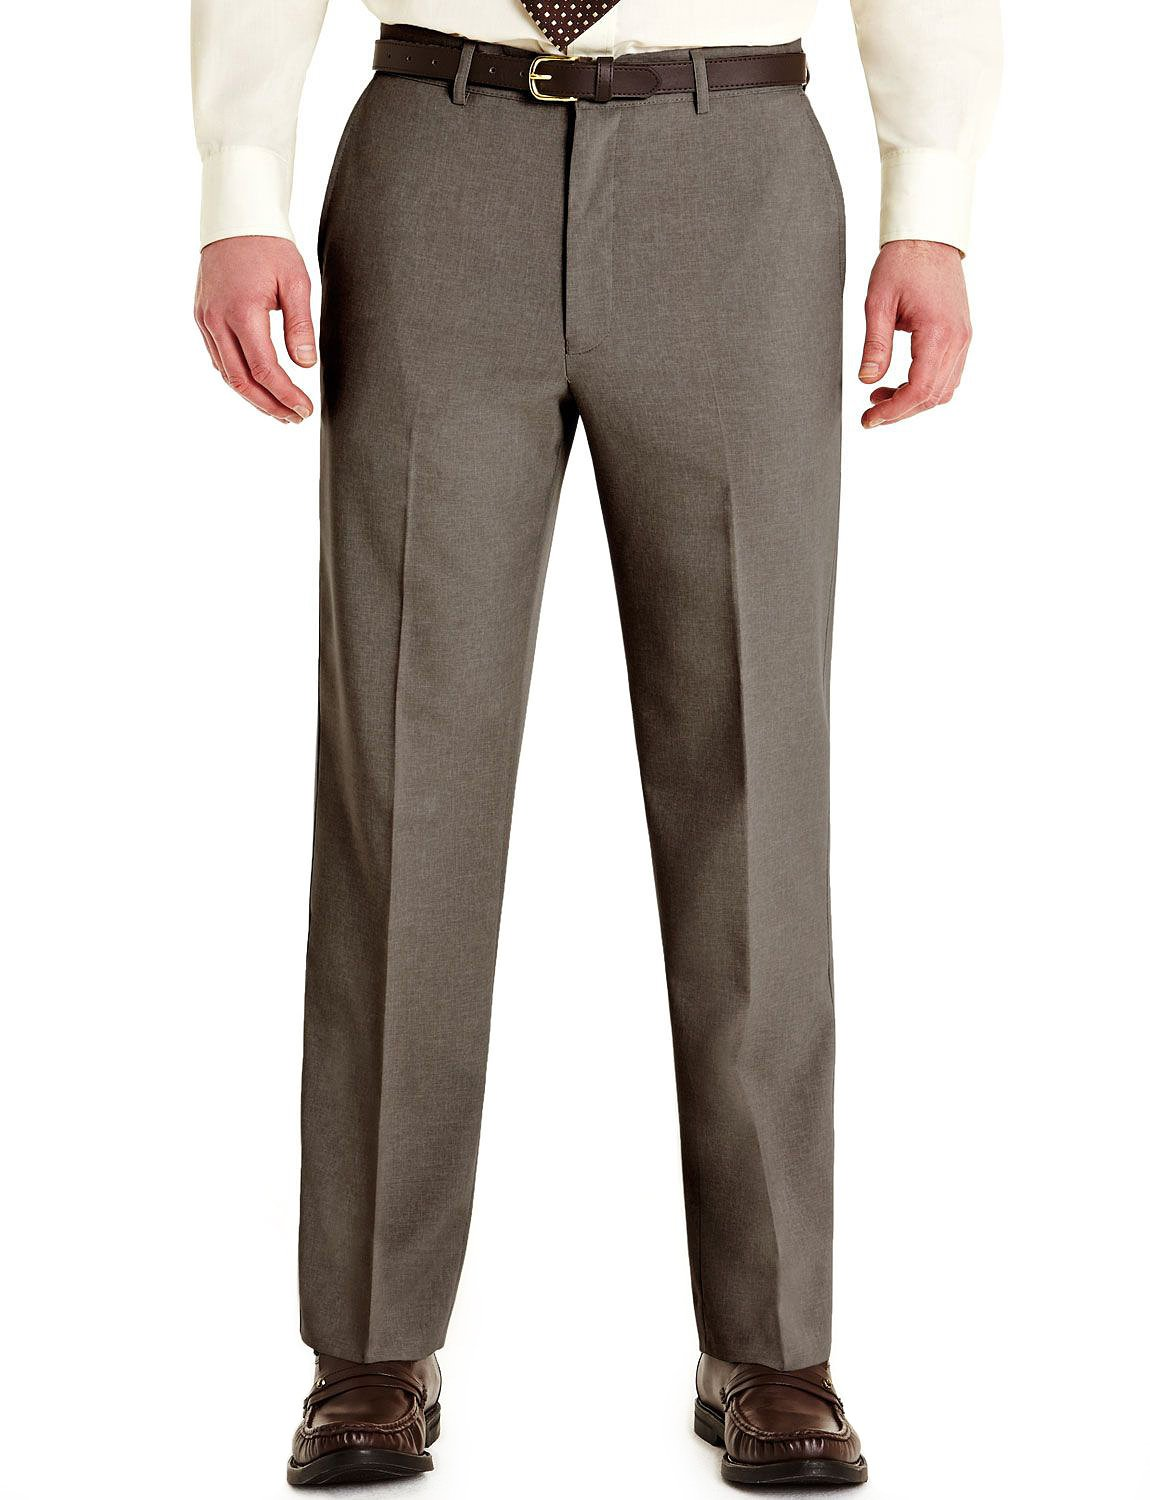 Farah Mens Slant Pocket Formal Classic Trouser